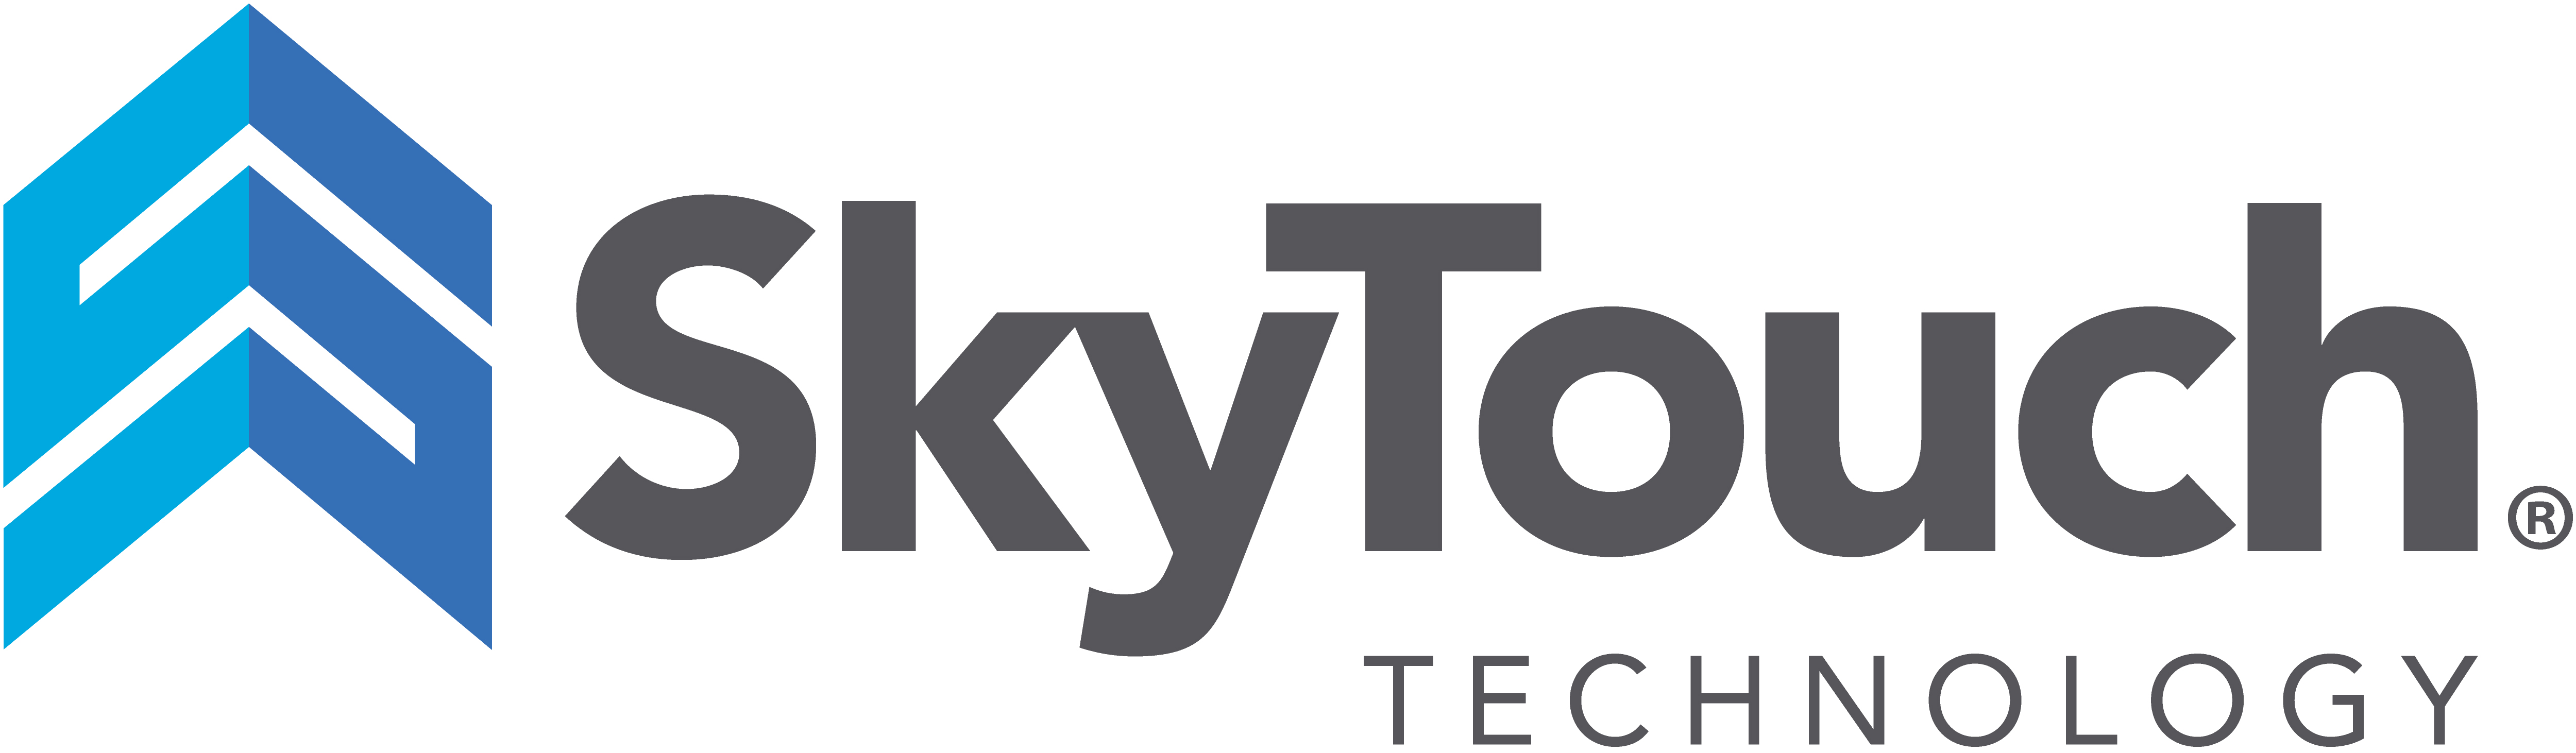 SkyTouch Technology